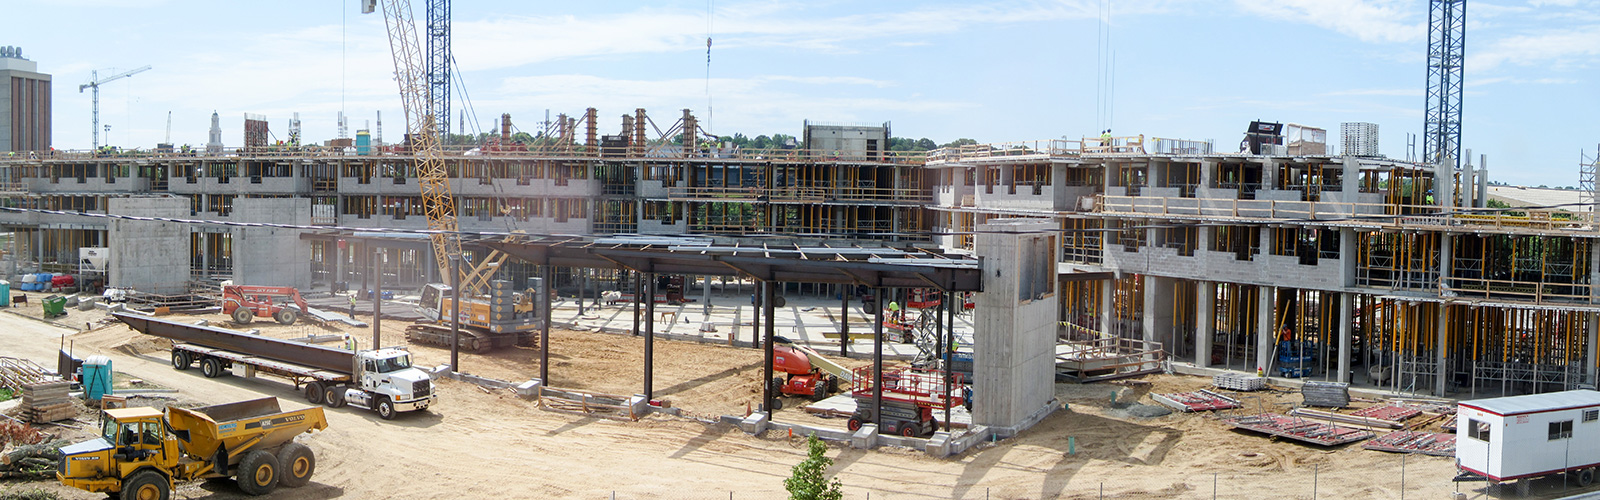 Dejope Residence Hall under construction